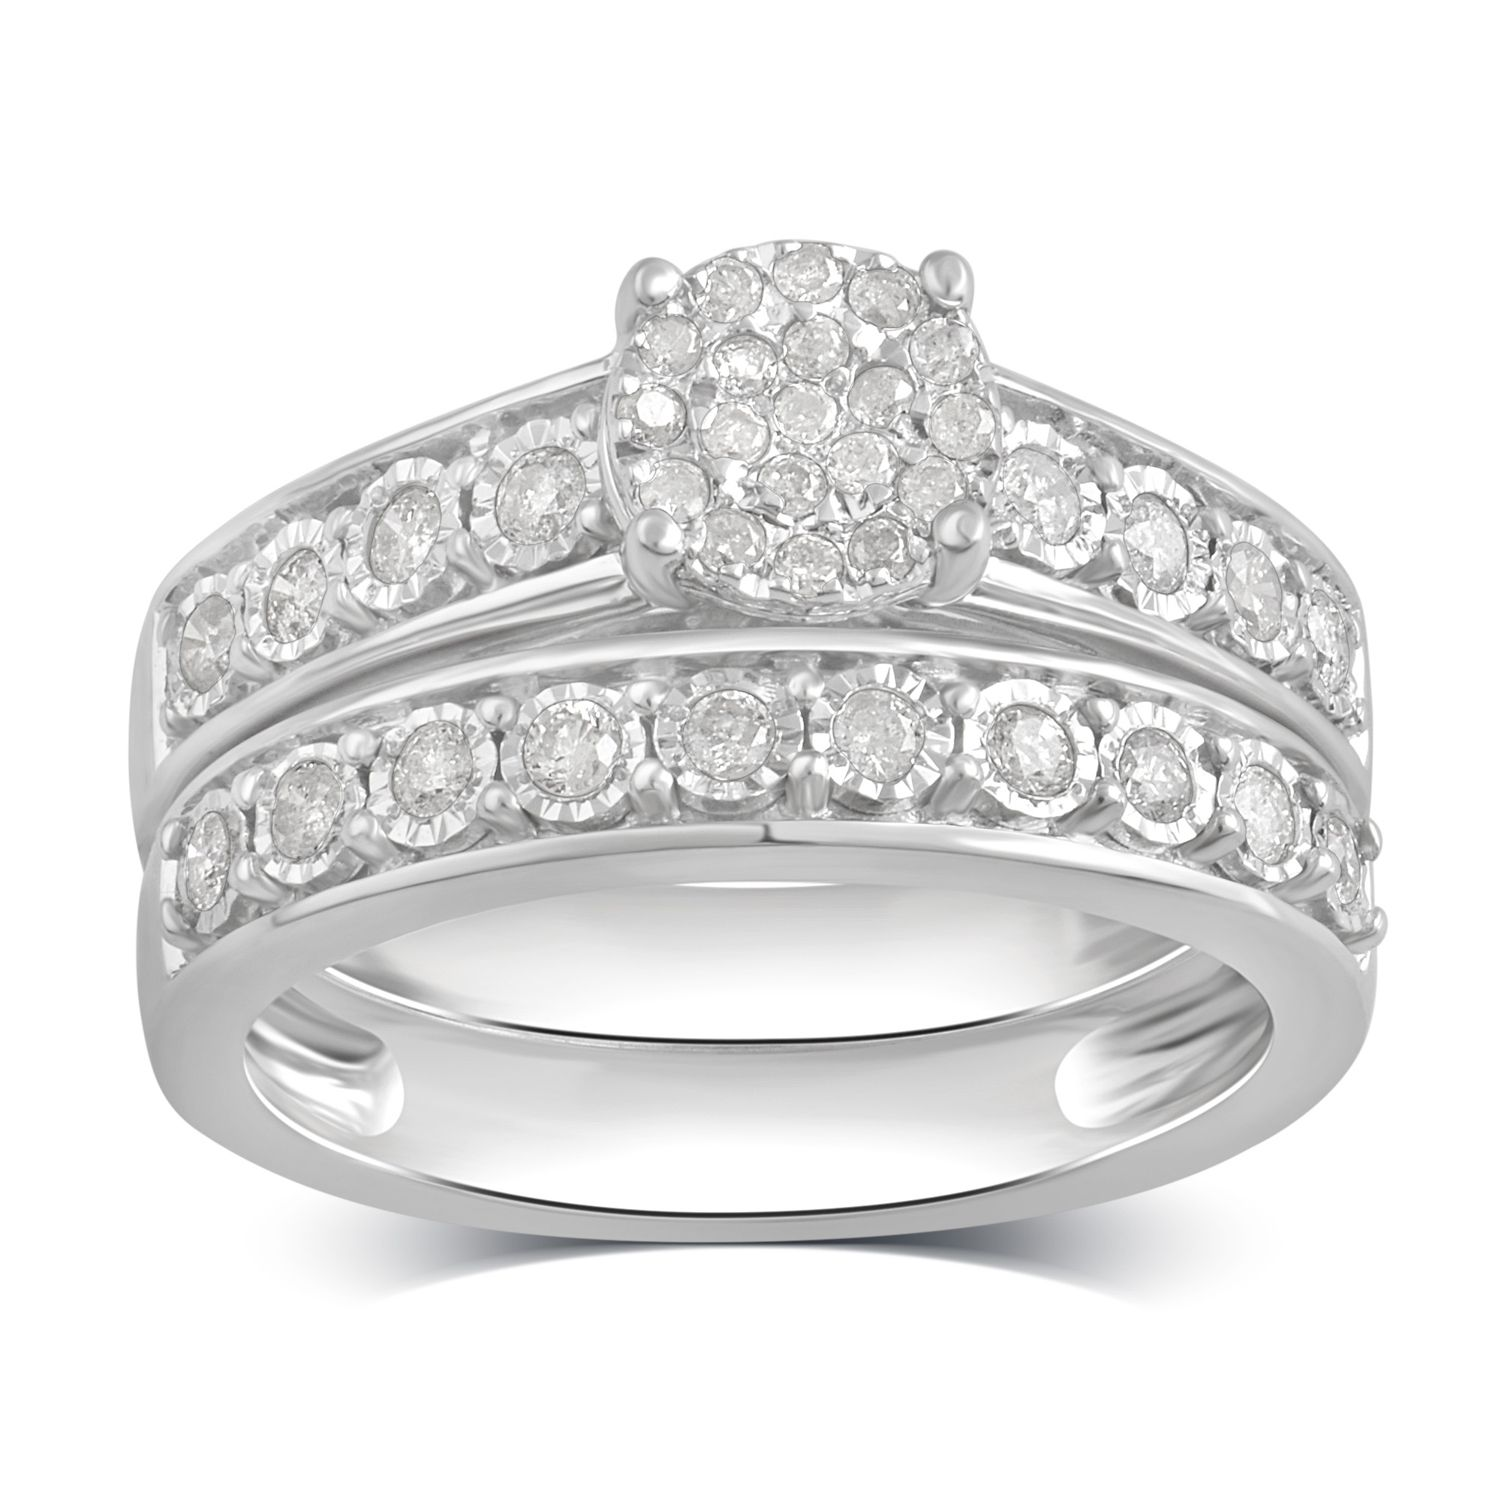 Arista 1 2 Carat T W Diamond Miracle Plate Sterling Silver Bridal Set Walmart Com Sterling Silver Wedding Rings Sets Art Deco Engagement Ring Handmade Engagement Rings